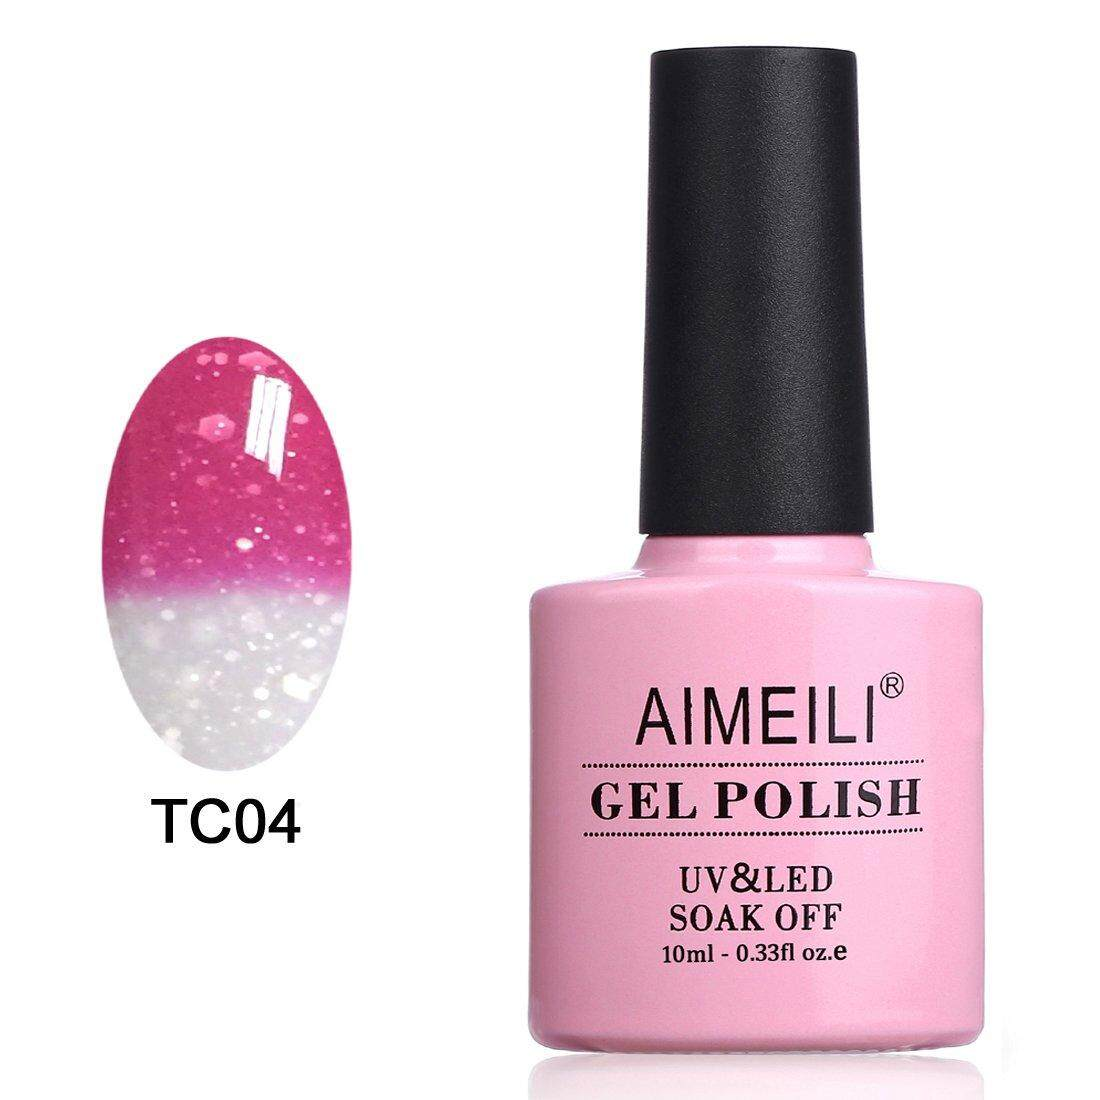 [ iiMONO ] AIMEILI Soak Off UV LED Temperature Color Changing Chameleon Gel Nail Polish - Hot Pink to Glitter White (TC04) 10ml